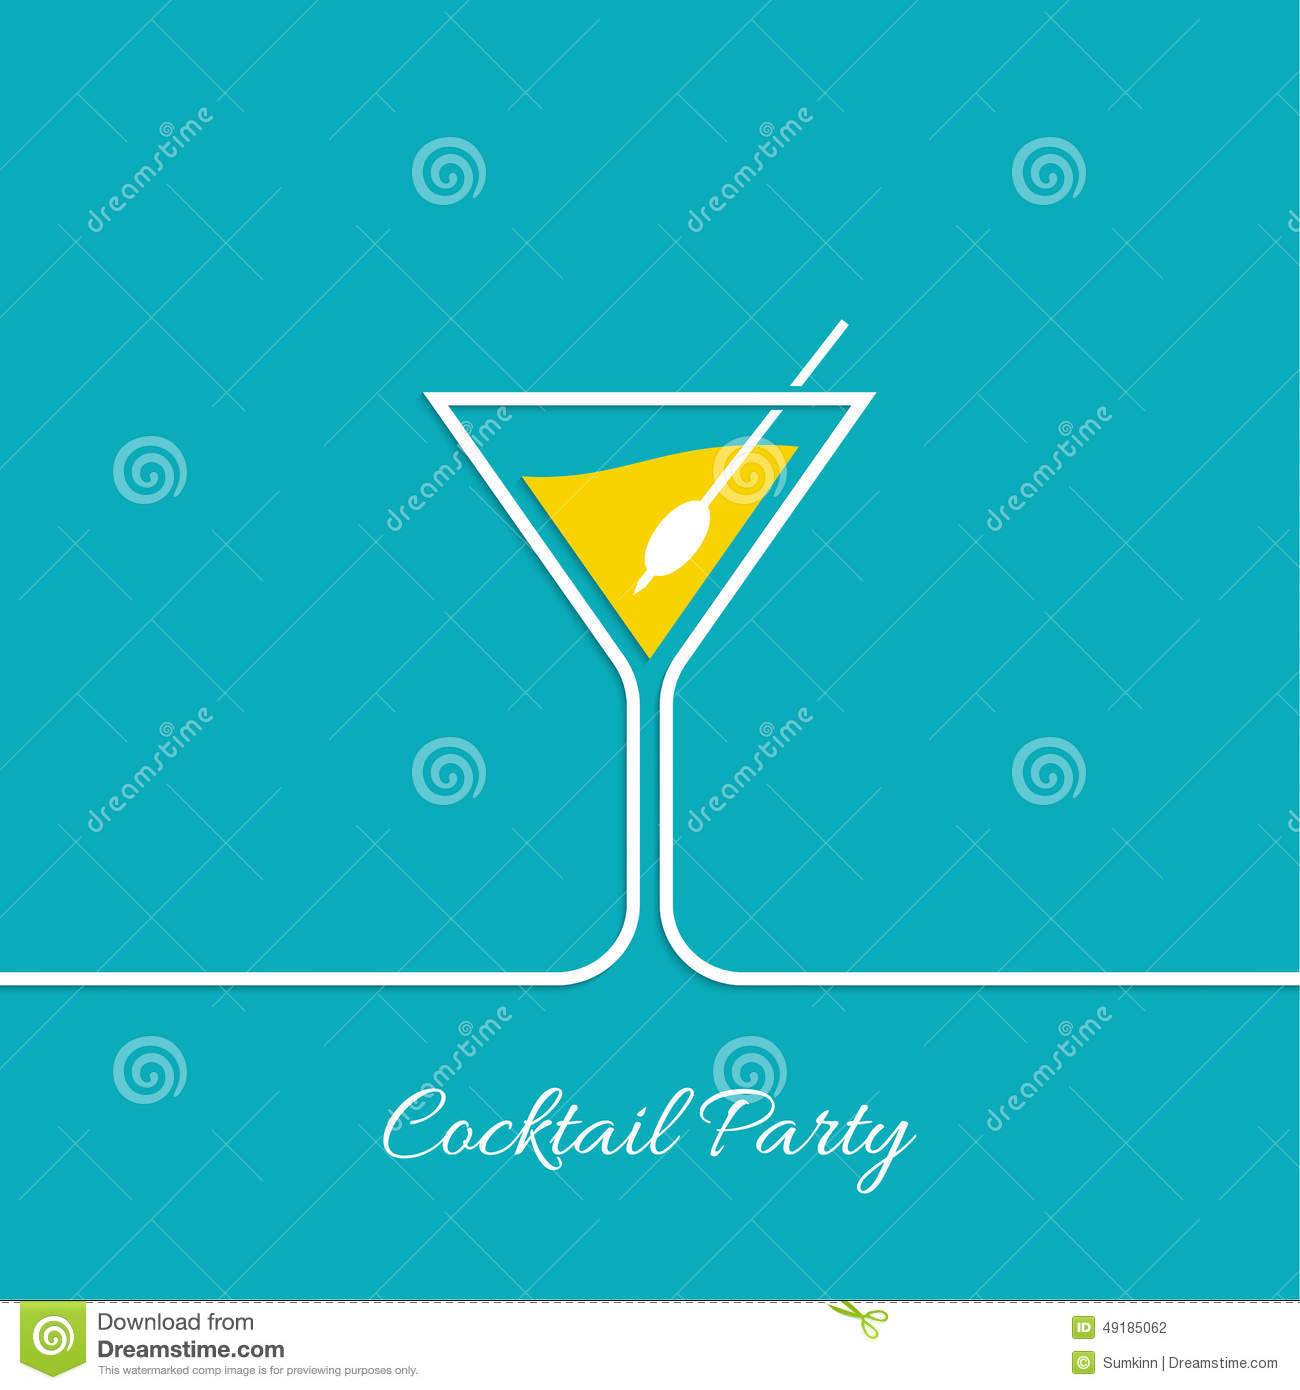 Cocktail Party Invitation Cards for good invitations example